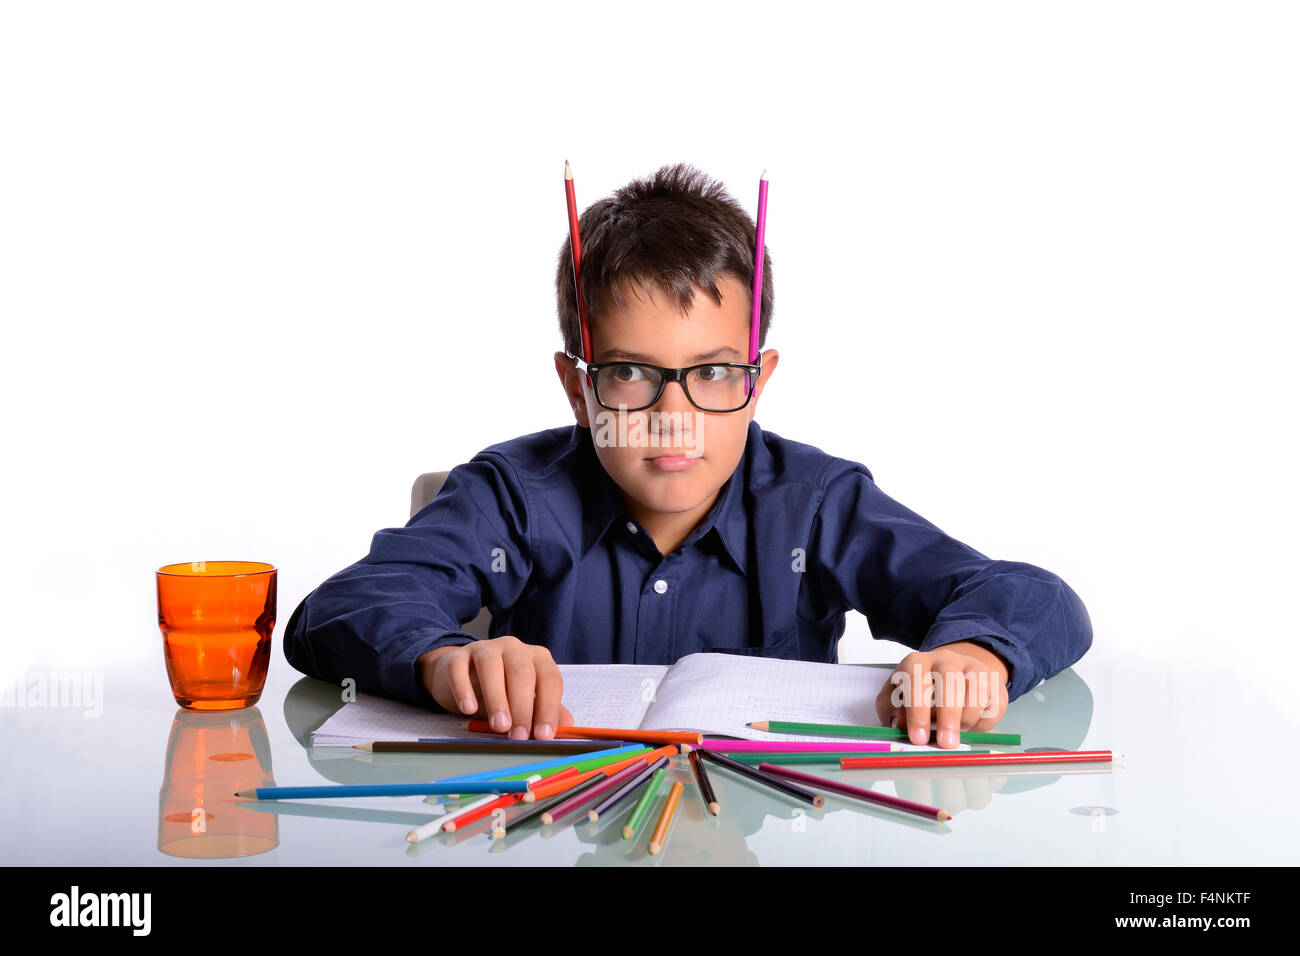 At home it's time to do homework. The student has a good idea for his work. - Stock Image